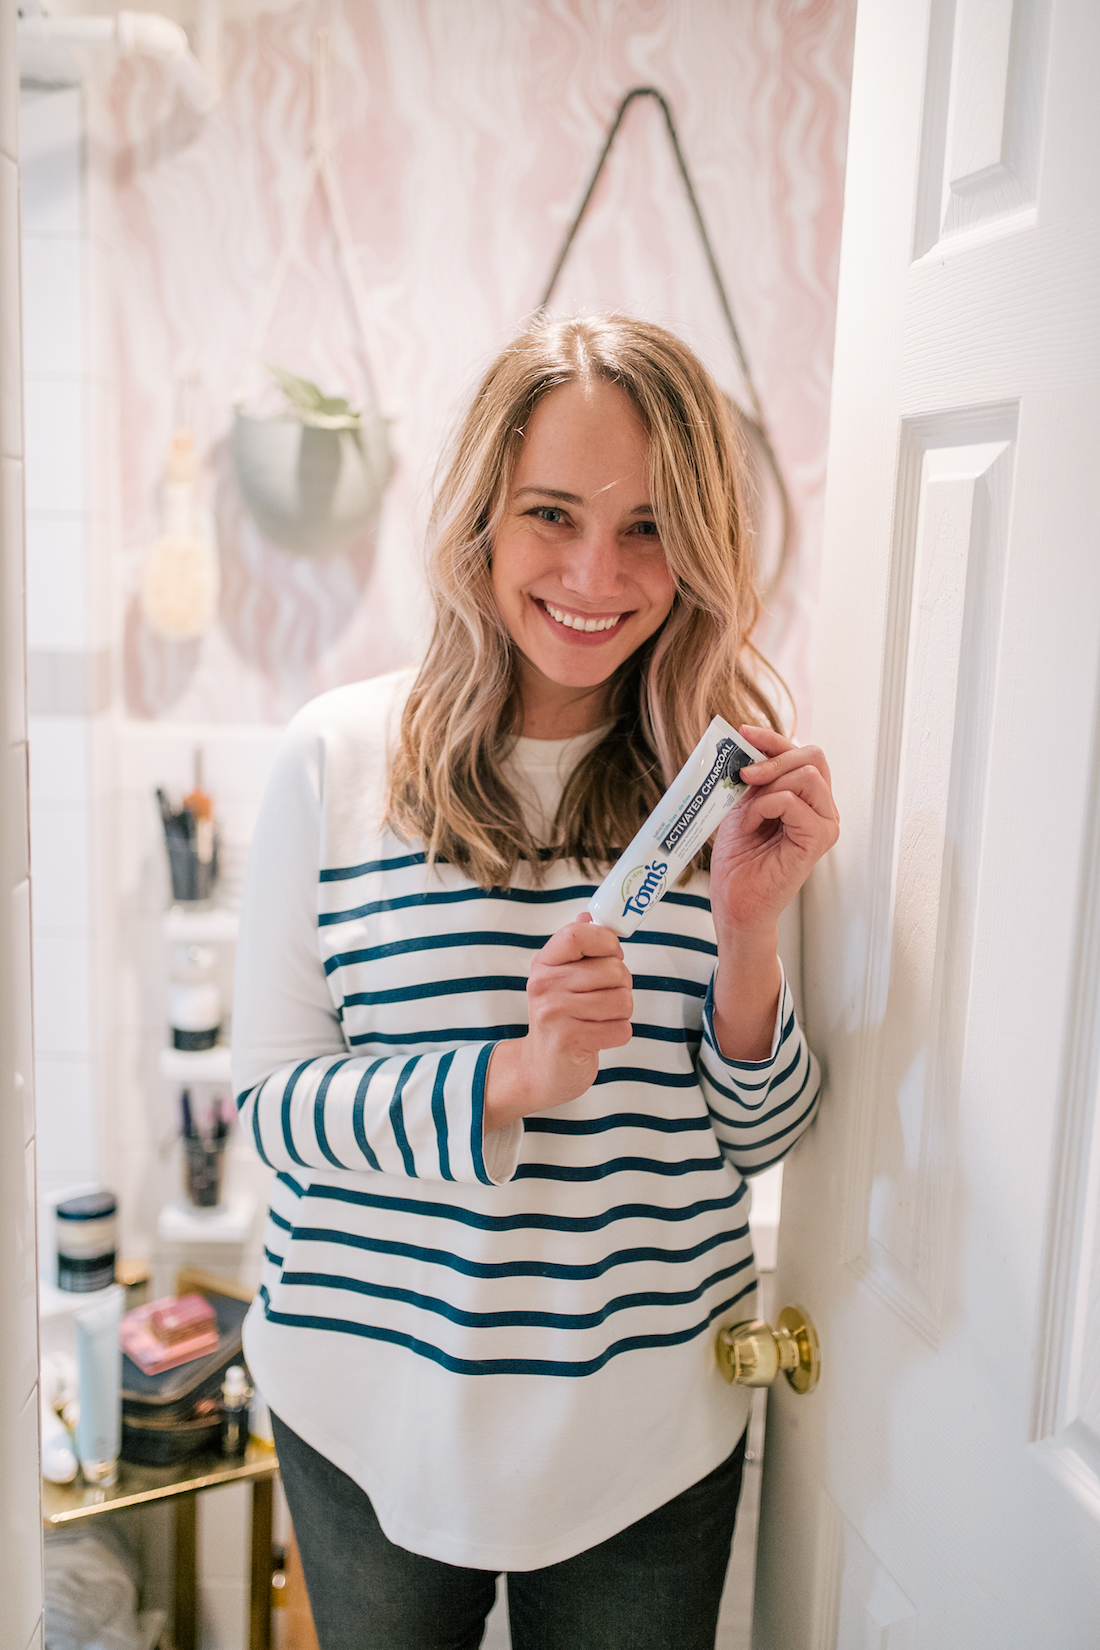 Grace Atwood is featuring Tom's of Maine Charcoal Toothpaste